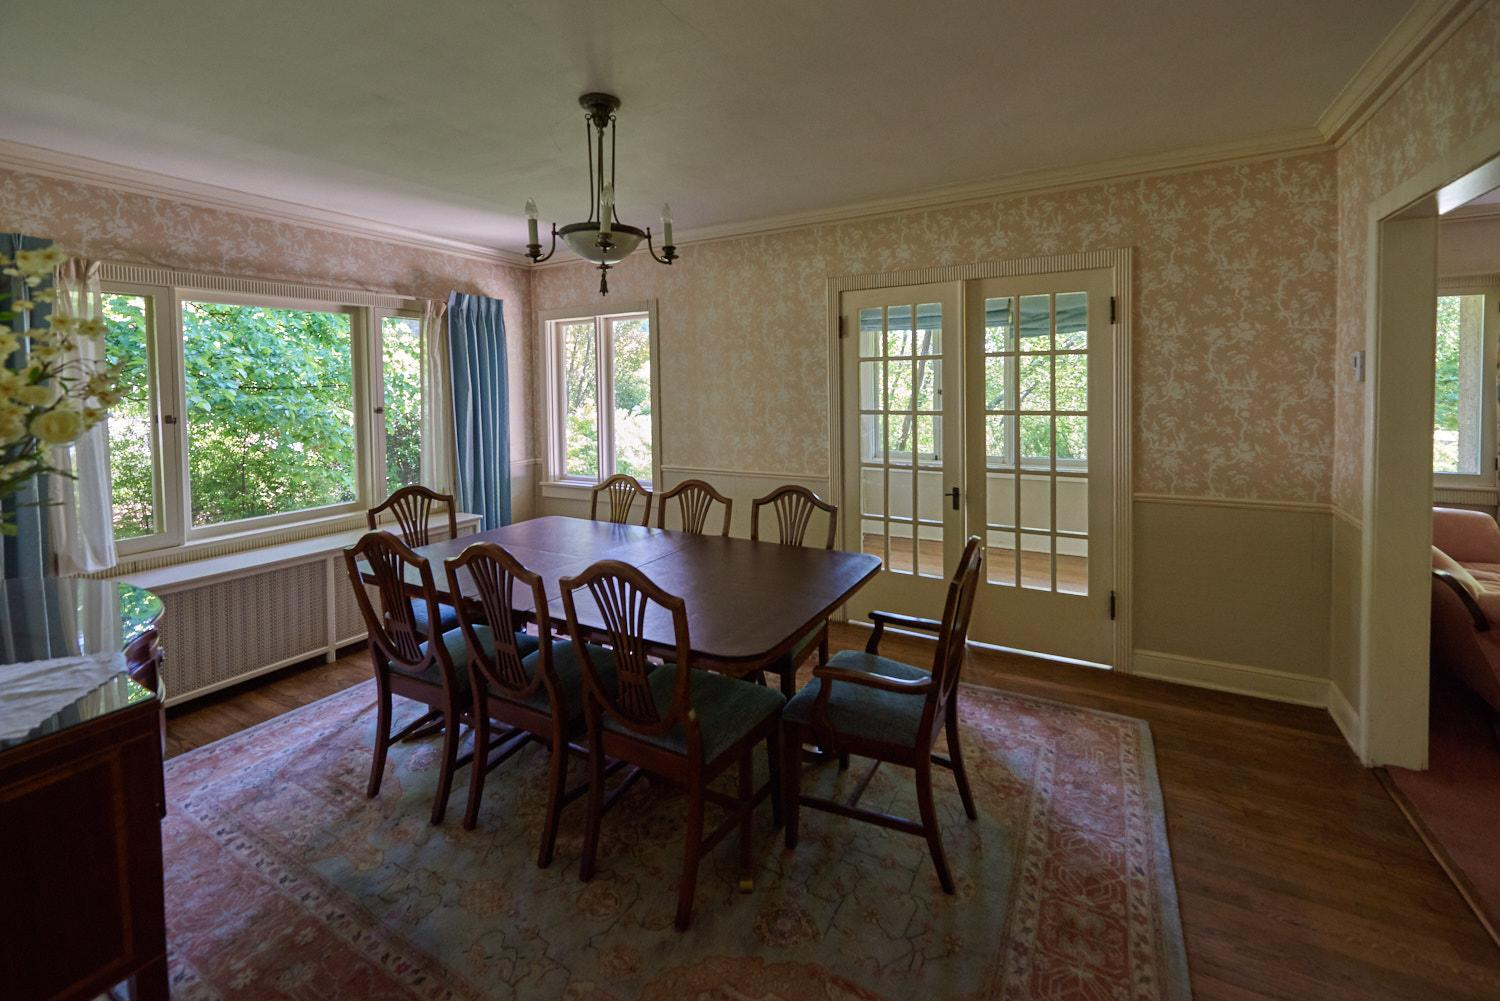 The Caine Home dining area has french doors which lead to a balcony patio.